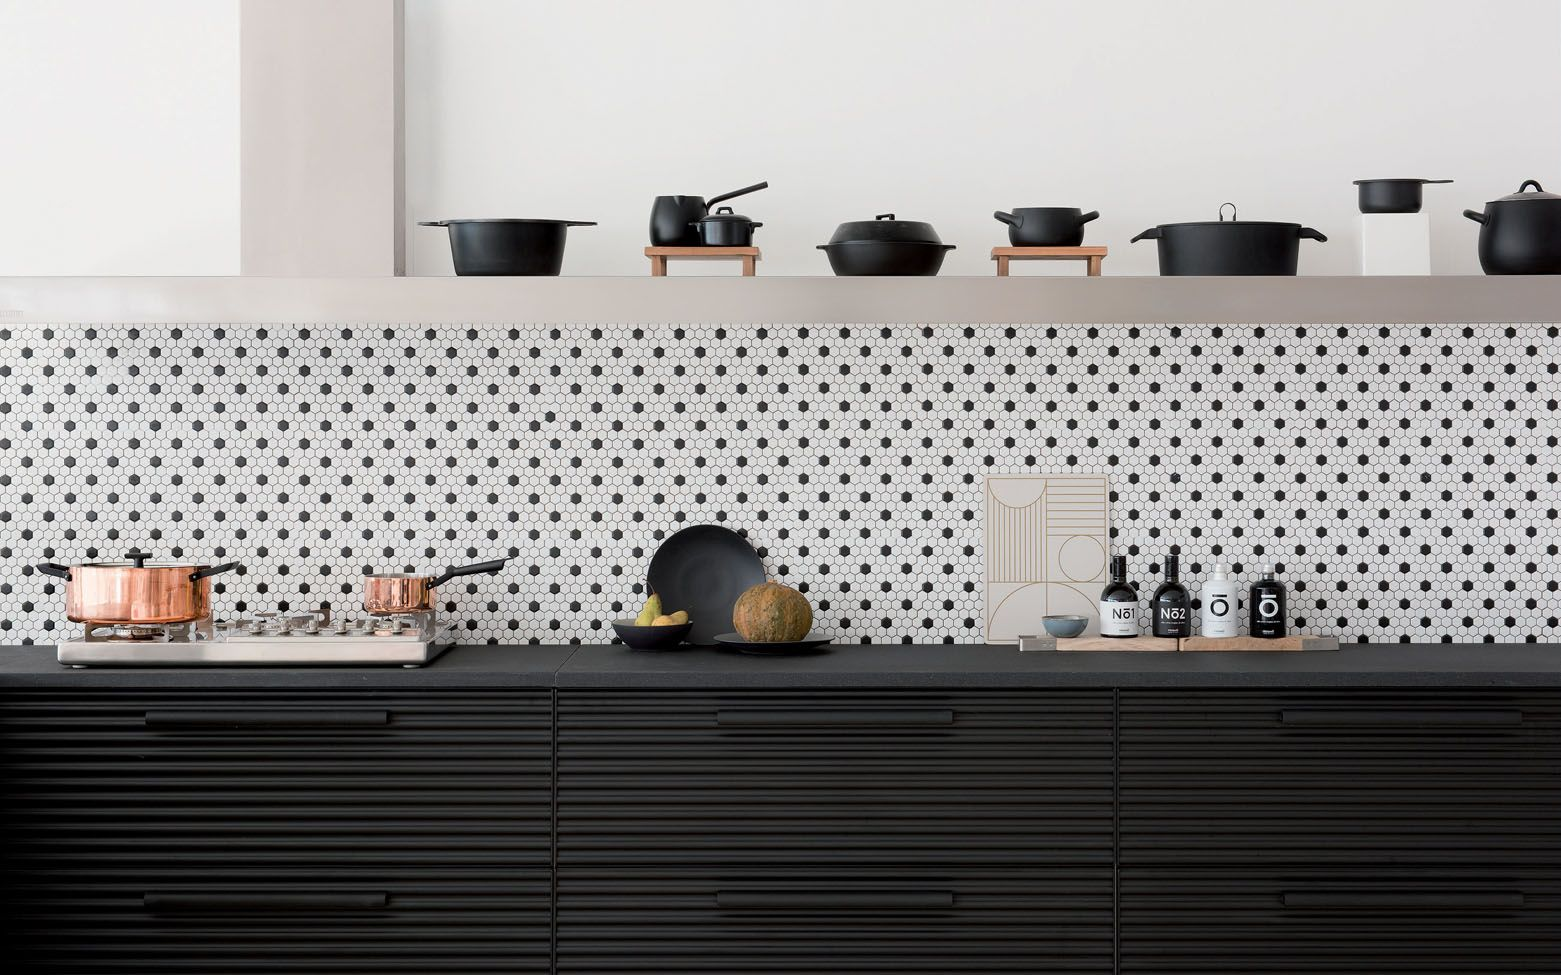 Pin By βασιλης θεοδωροπουλος On Your Pinterest Likes Kitchens Without Upper Cabinets Black Kitchen Cabinets Kitchen Interior